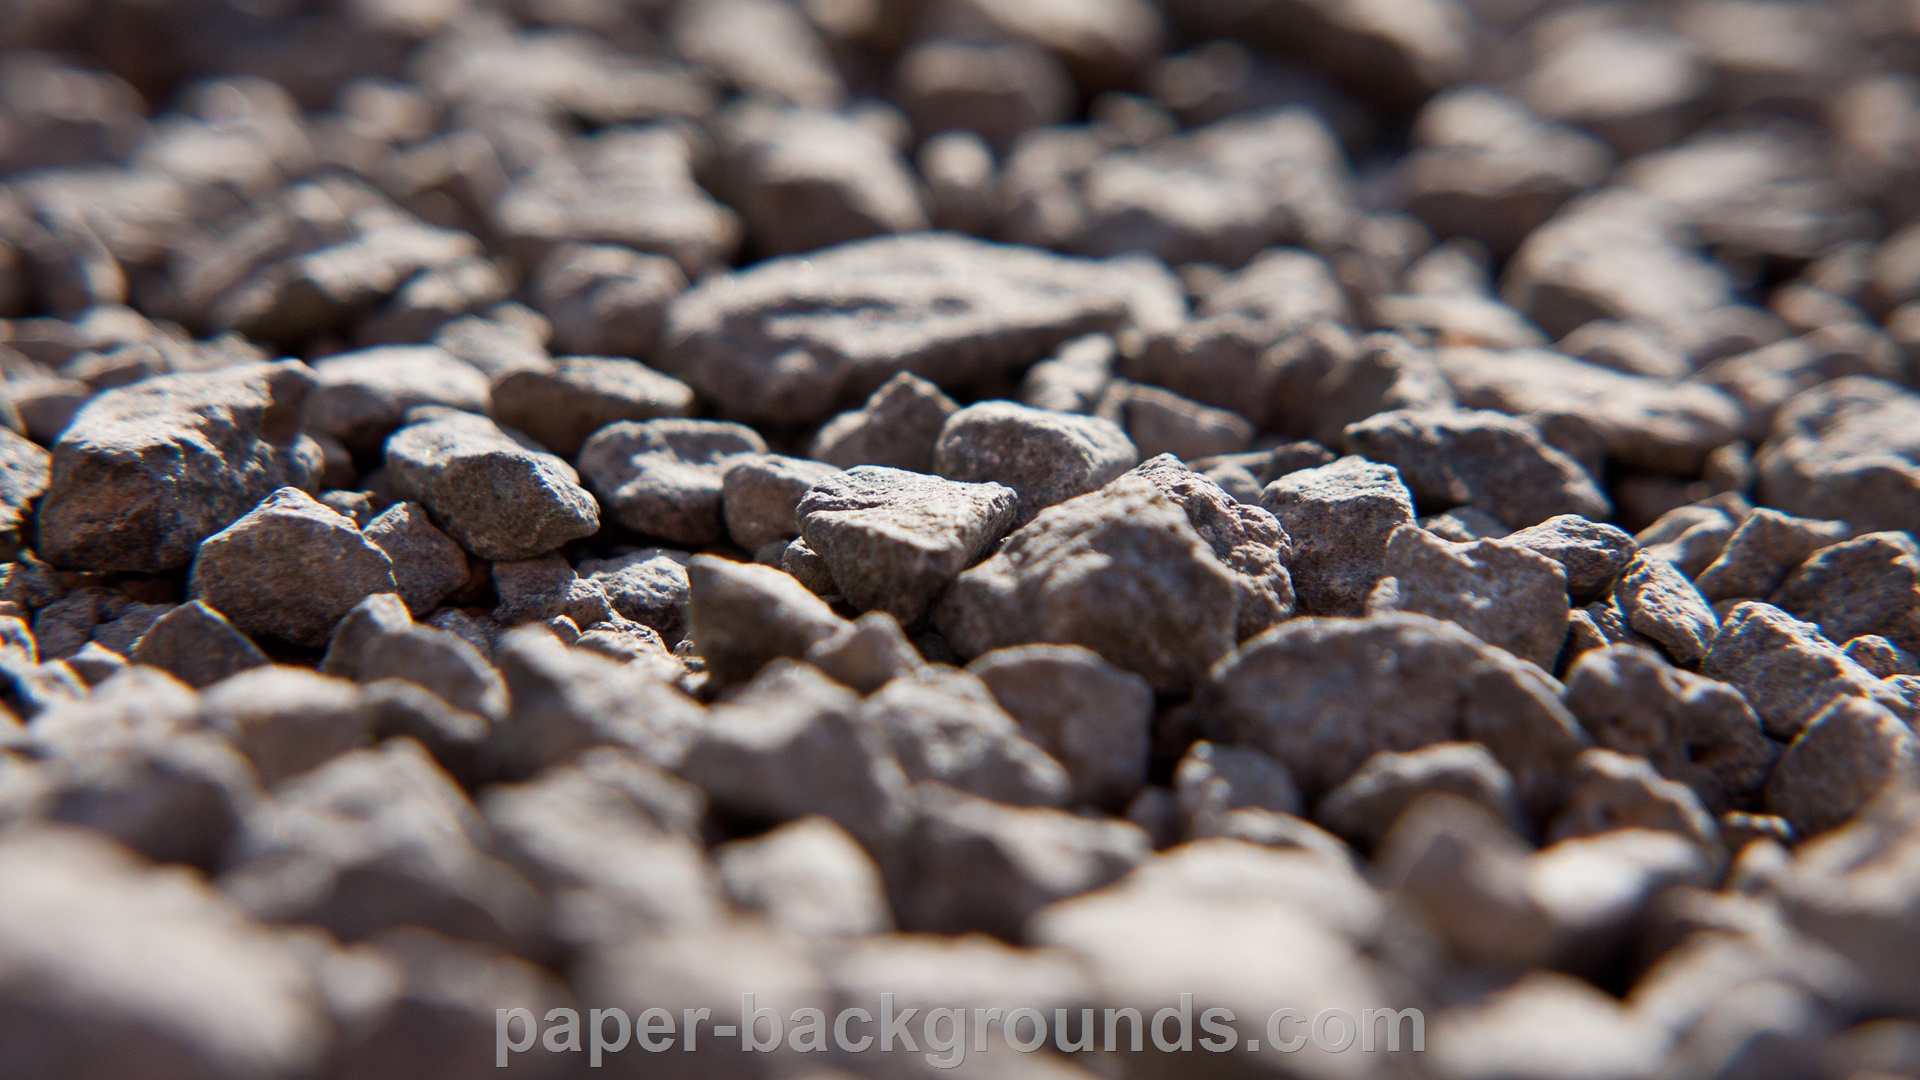 Stones Blurred Background Close-up HD